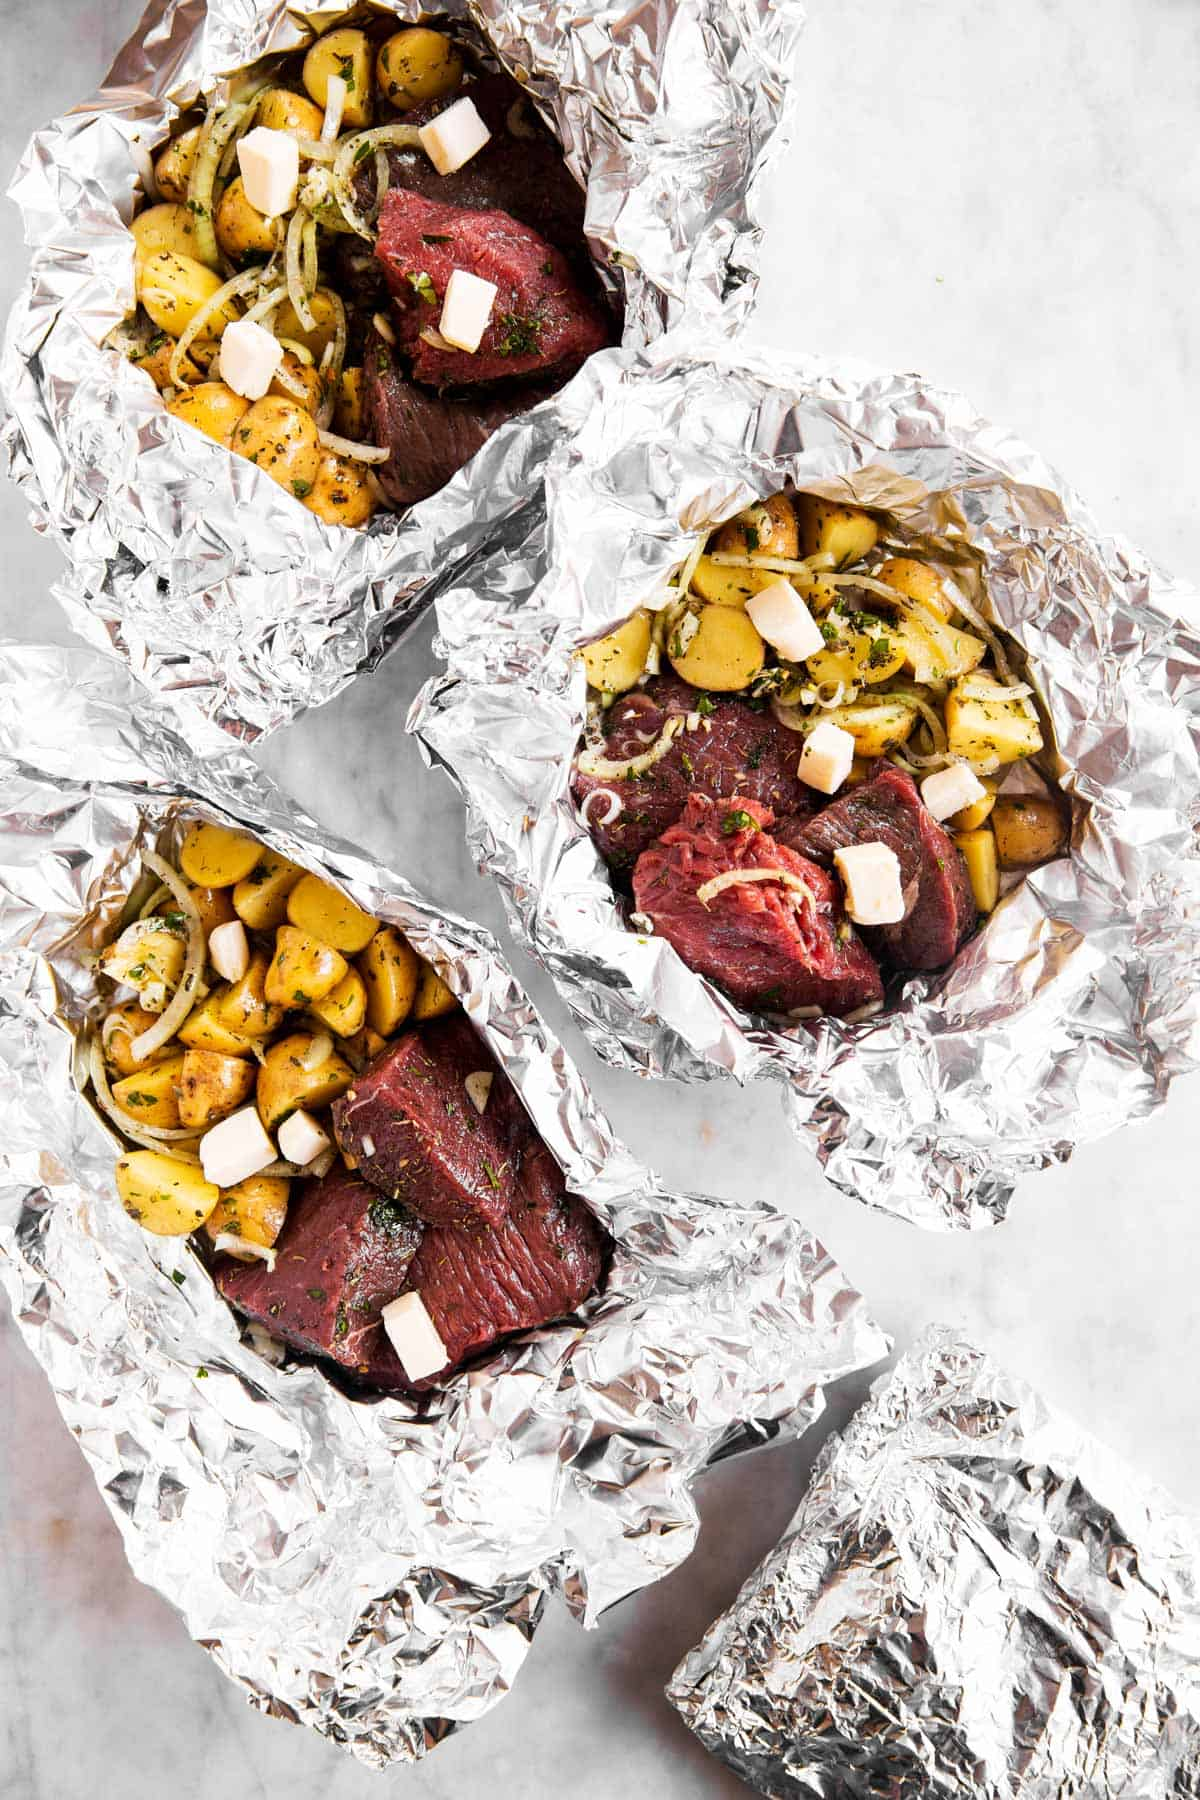 three unclosed steak and potato foil packets on marble surface